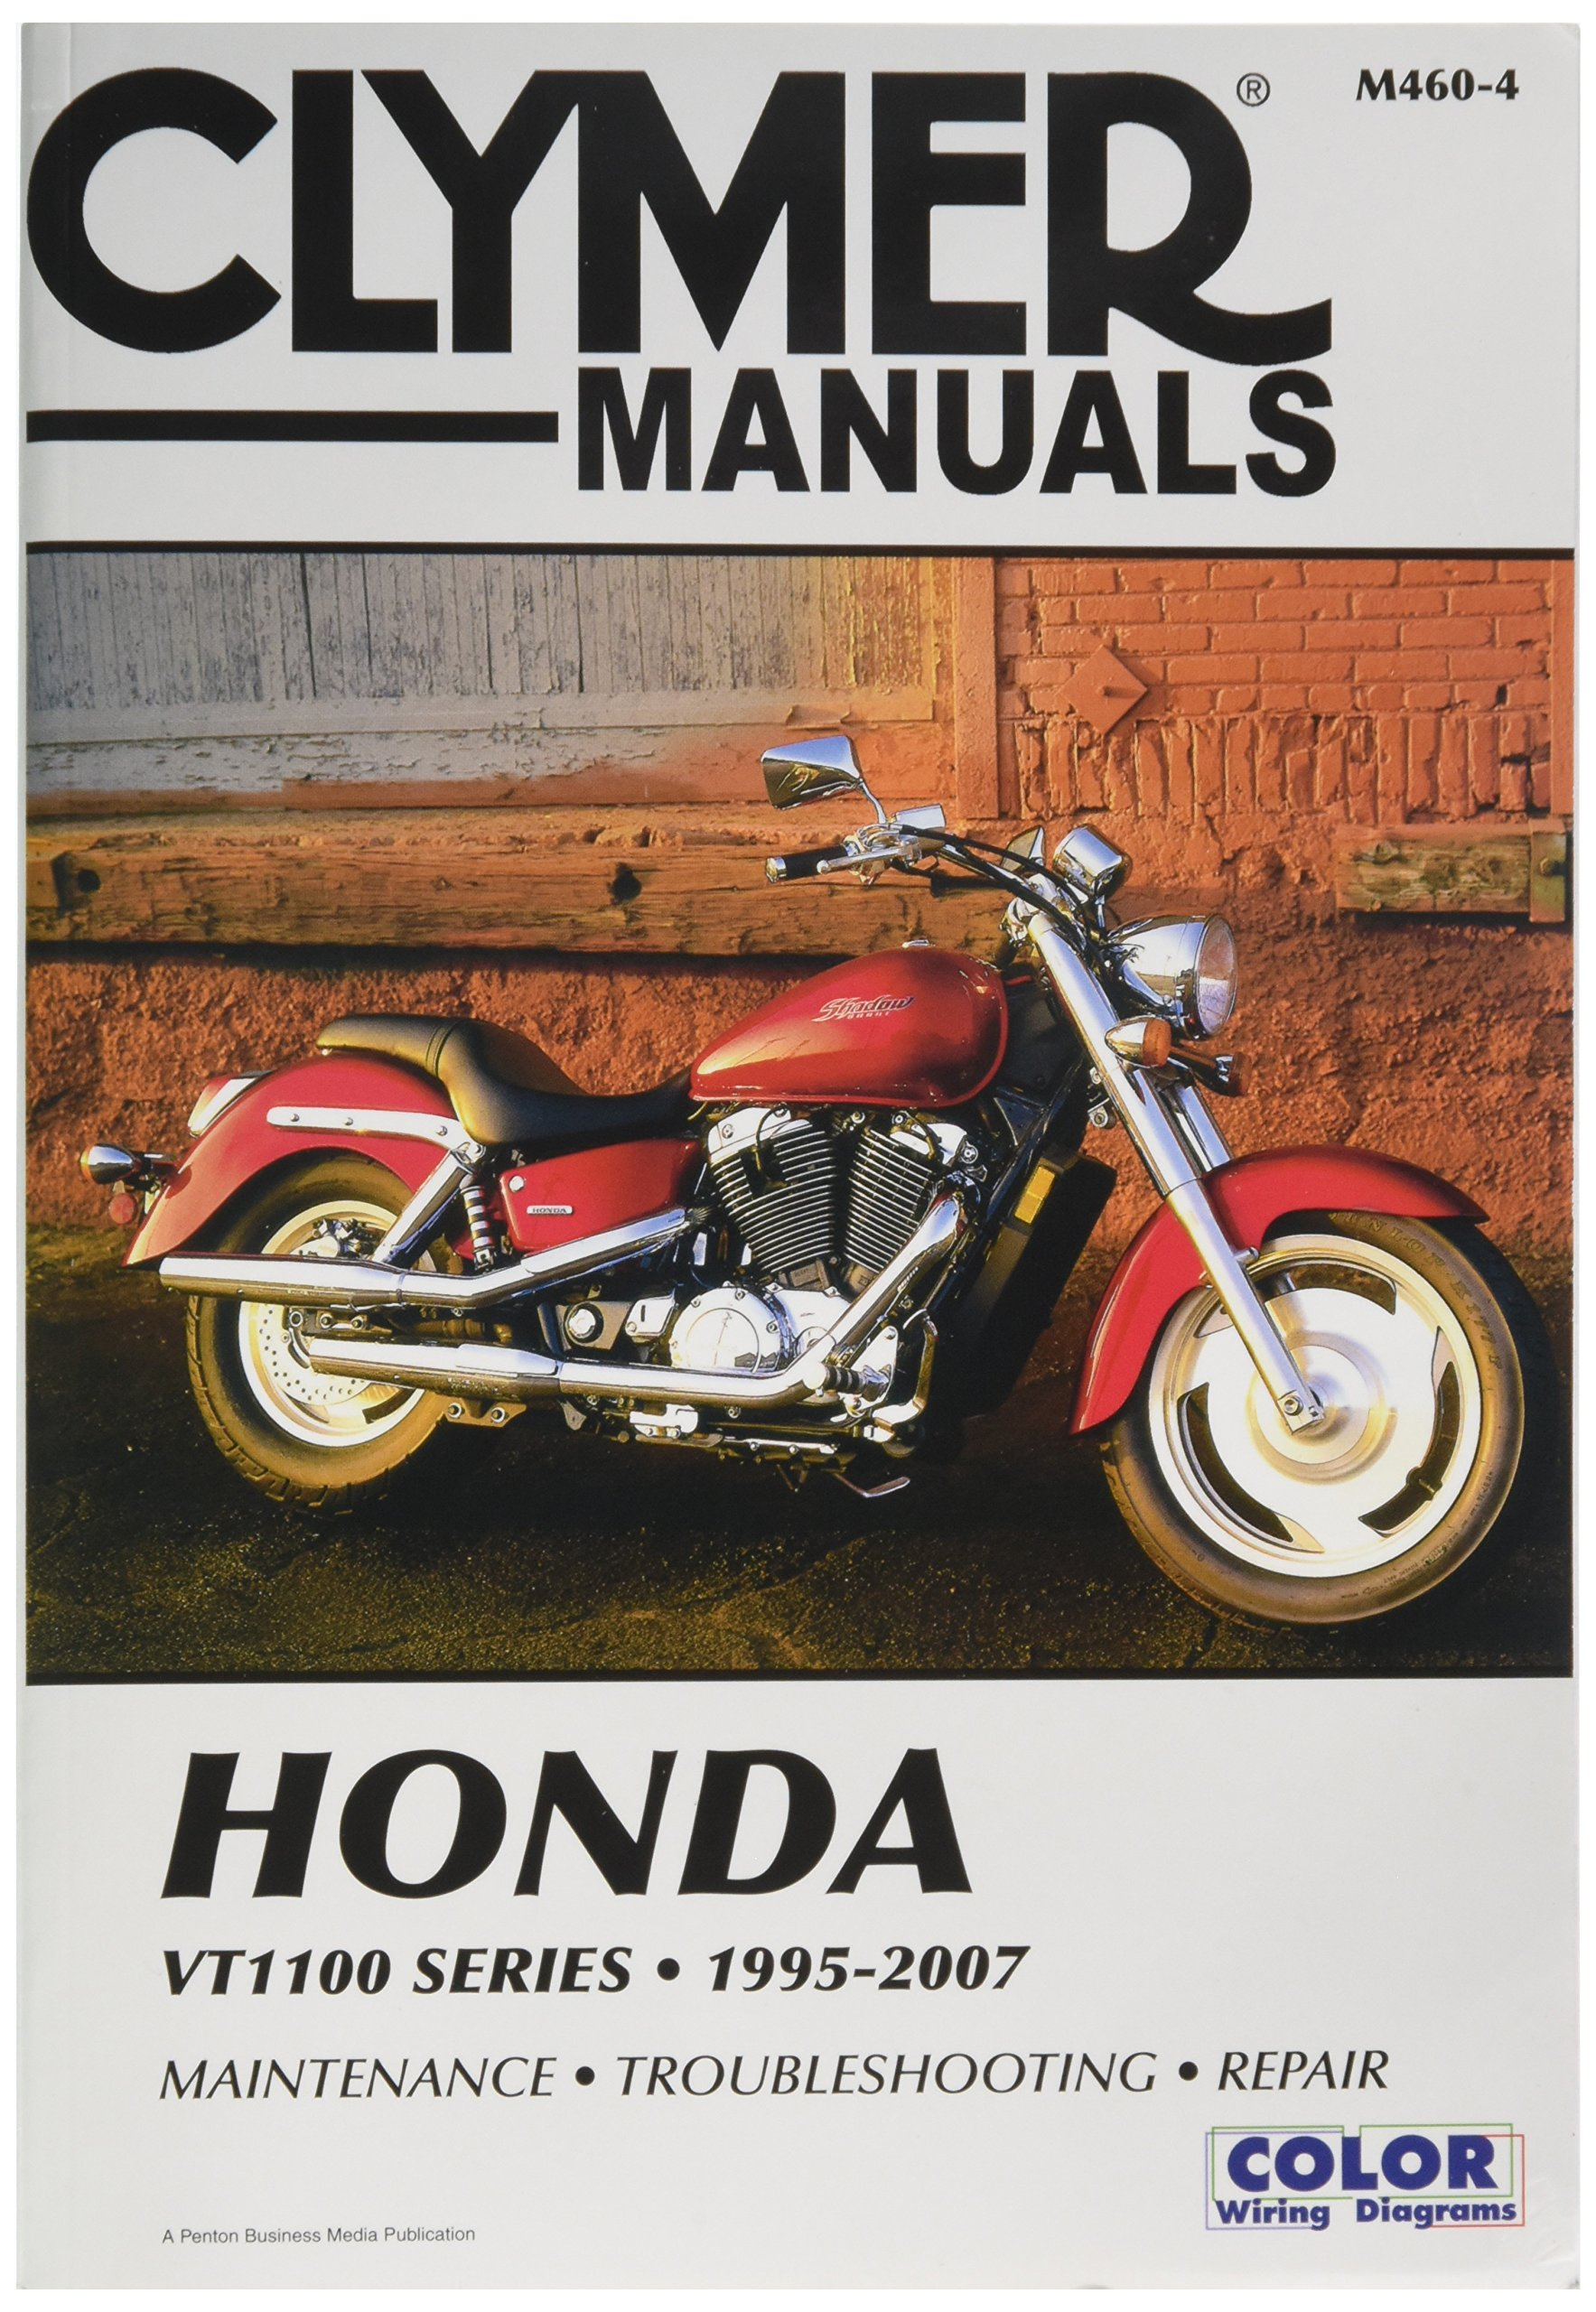 1999 Honda Aero Wiring Diagram Libraries Shadow Ace 1100 Parts Amazon Comclymer Repair Manual For Vt1100 Vt Series